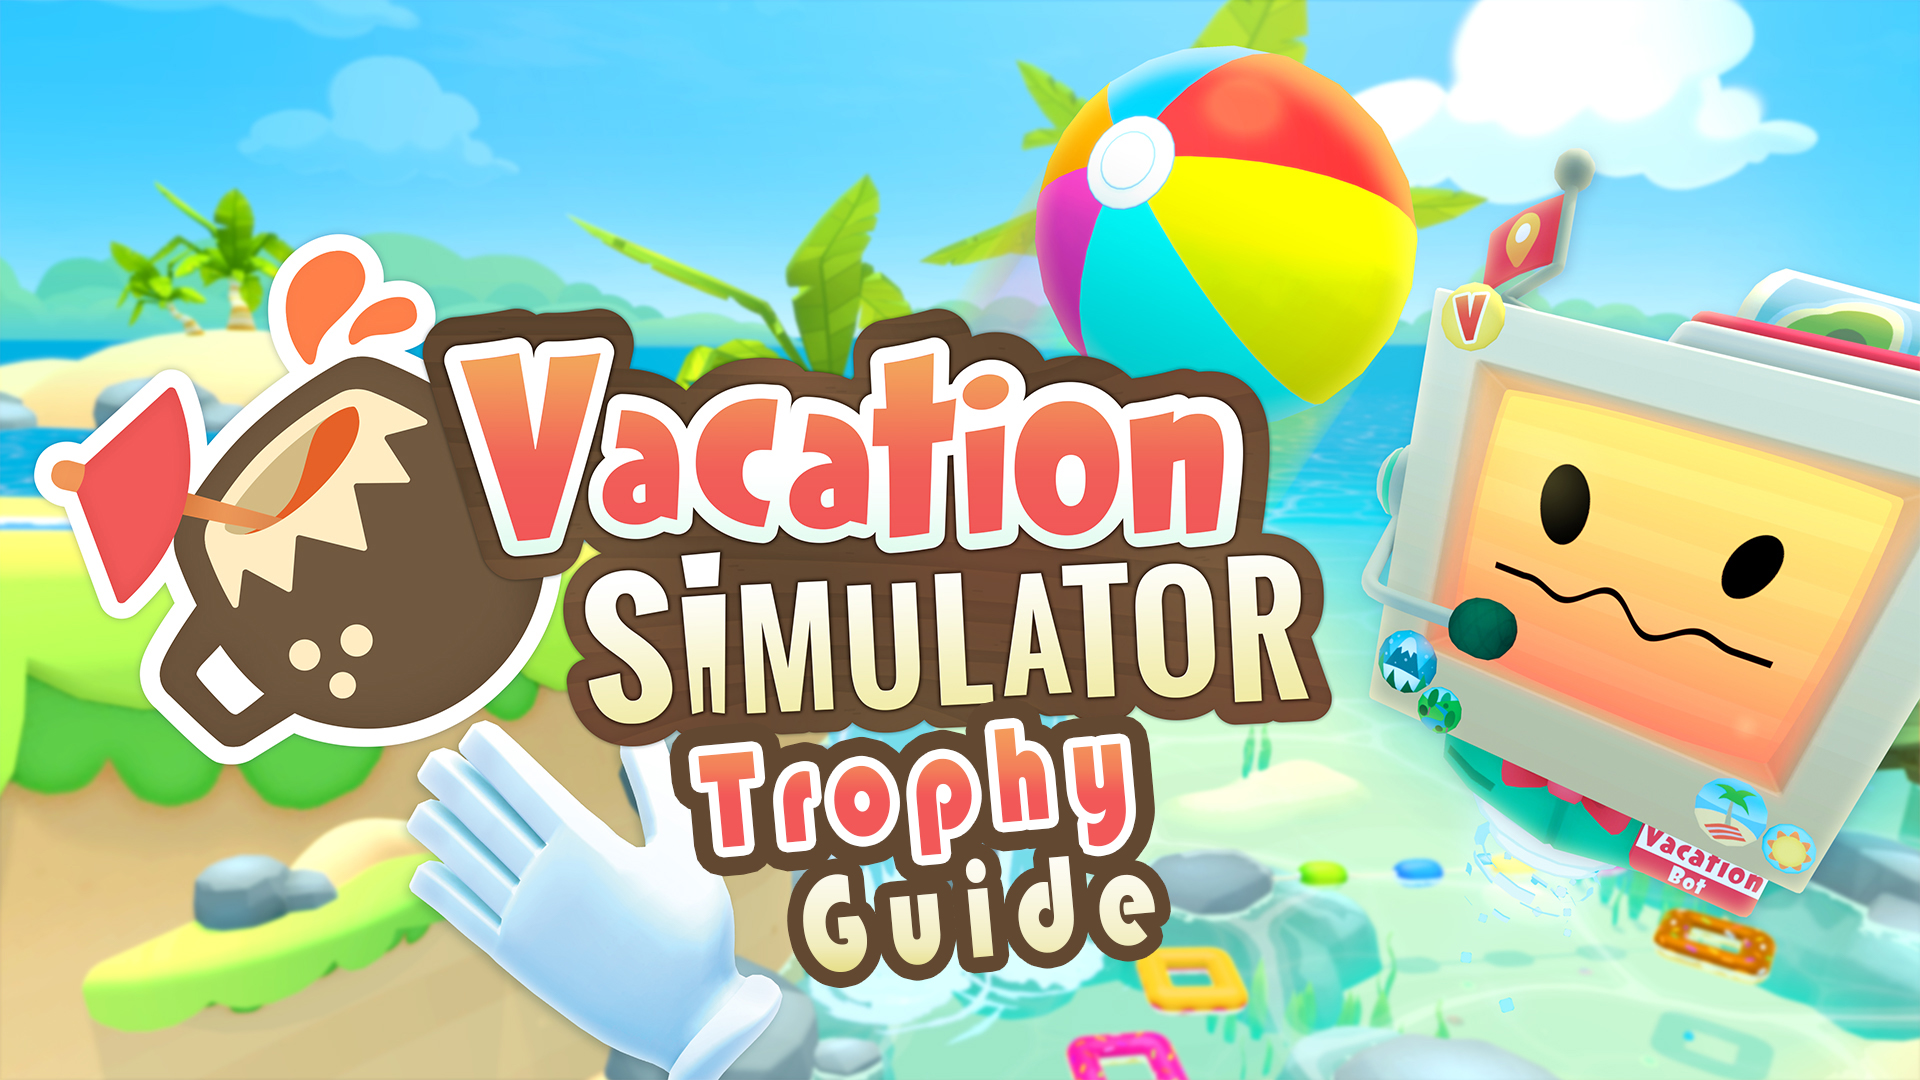 Vacation Simulator Trophy Guide